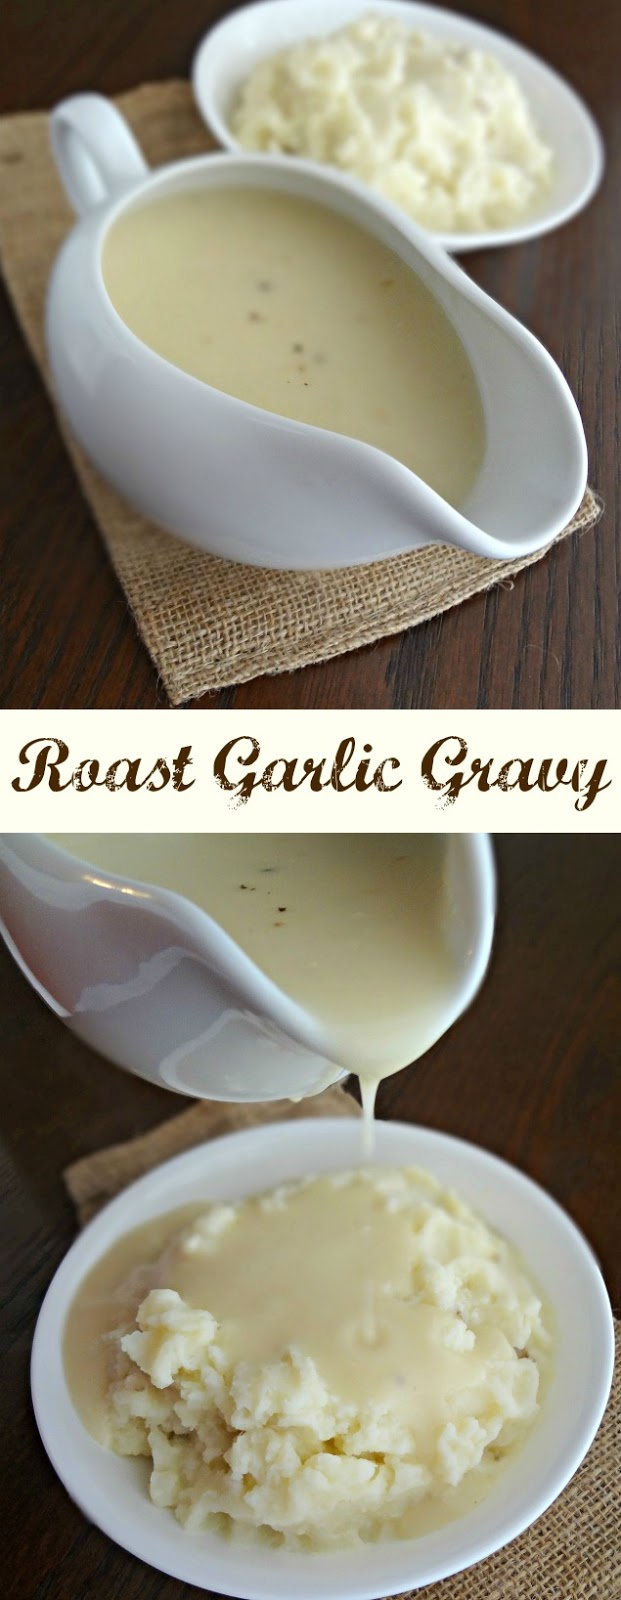 Roast Garlic Gravy